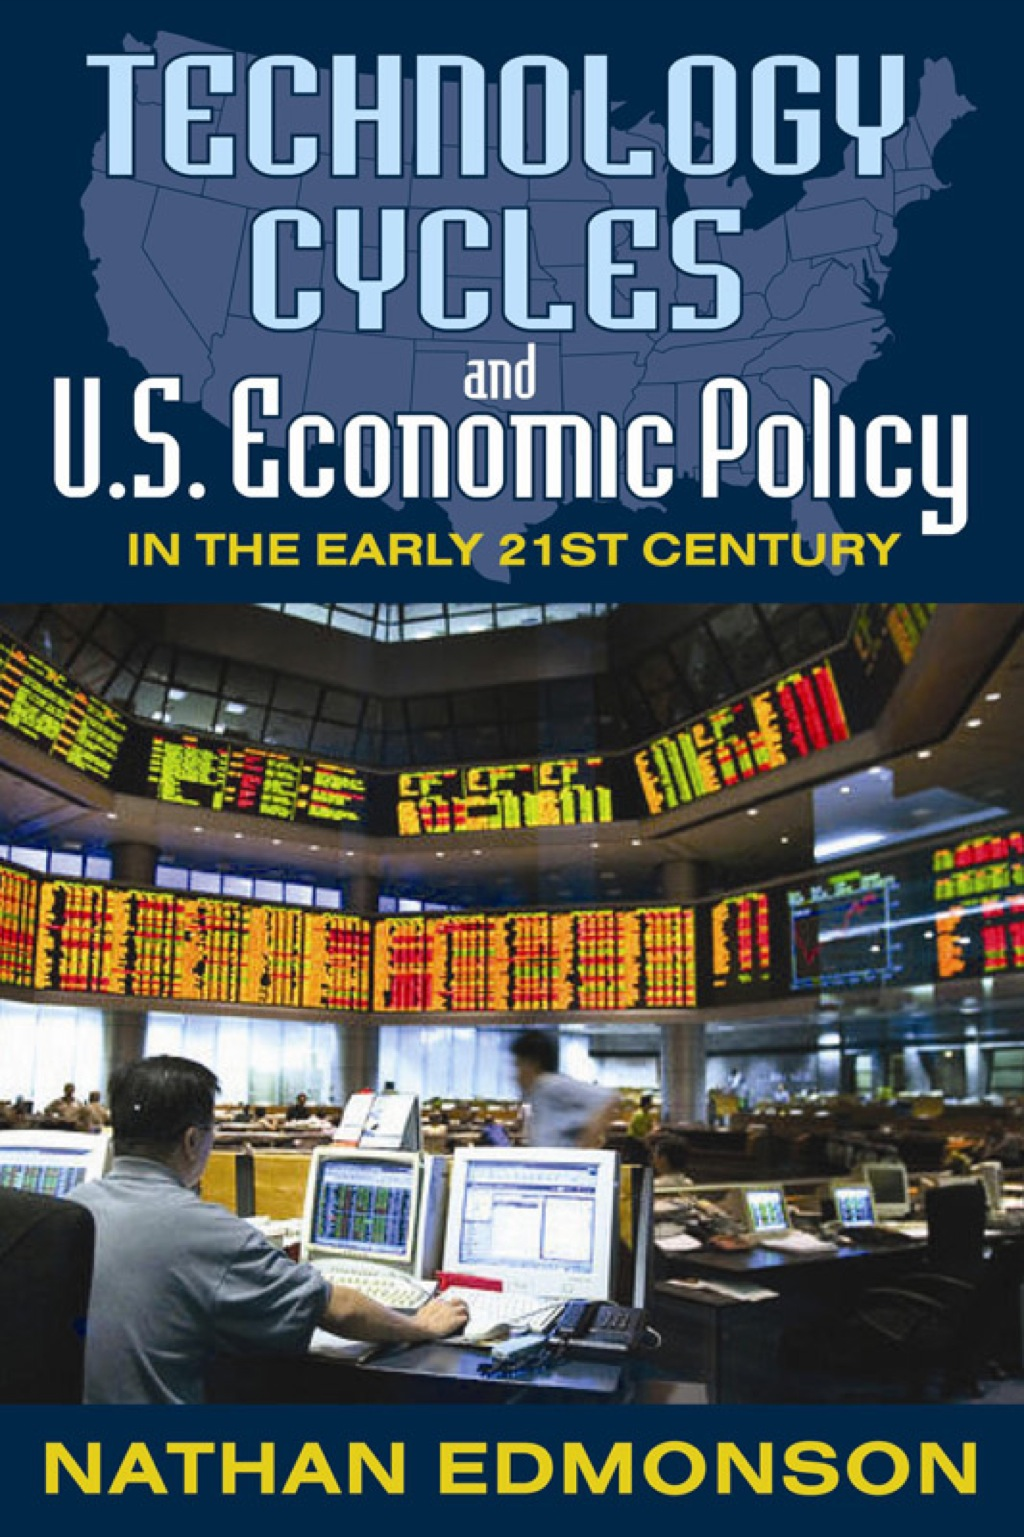 Technology Cycles and U.S. Economic Policy in the Early 21st Century (eBook)